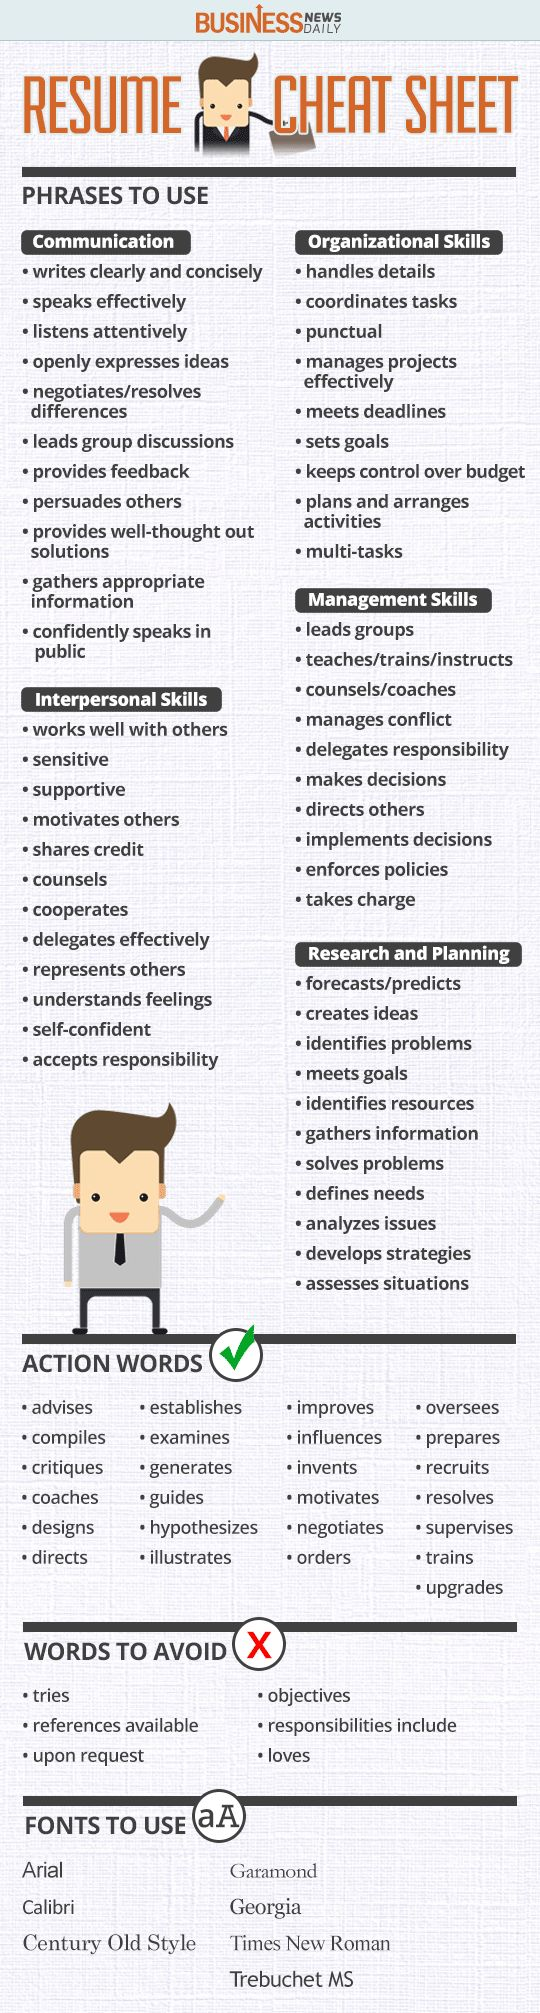 Opposenewapstandardsus  Winning  Ideas About Resume On Pinterest  Cv Format Resume Cv And  With Handsome Resume Cheat Sheet Infographic Andrews Almost Done With A Complete Unit On Employment Which With Endearing Sample Resume Word Doc Also Resume Text In Addition Upload Your Resume And How To Make A Video Resume As Well As Warehouse Supervisor Resume Sample Additionally Personal Banker Resume Examples From Pinterestcom With Opposenewapstandardsus  Handsome  Ideas About Resume On Pinterest  Cv Format Resume Cv And  With Endearing Resume Cheat Sheet Infographic Andrews Almost Done With A Complete Unit On Employment Which And Winning Sample Resume Word Doc Also Resume Text In Addition Upload Your Resume From Pinterestcom